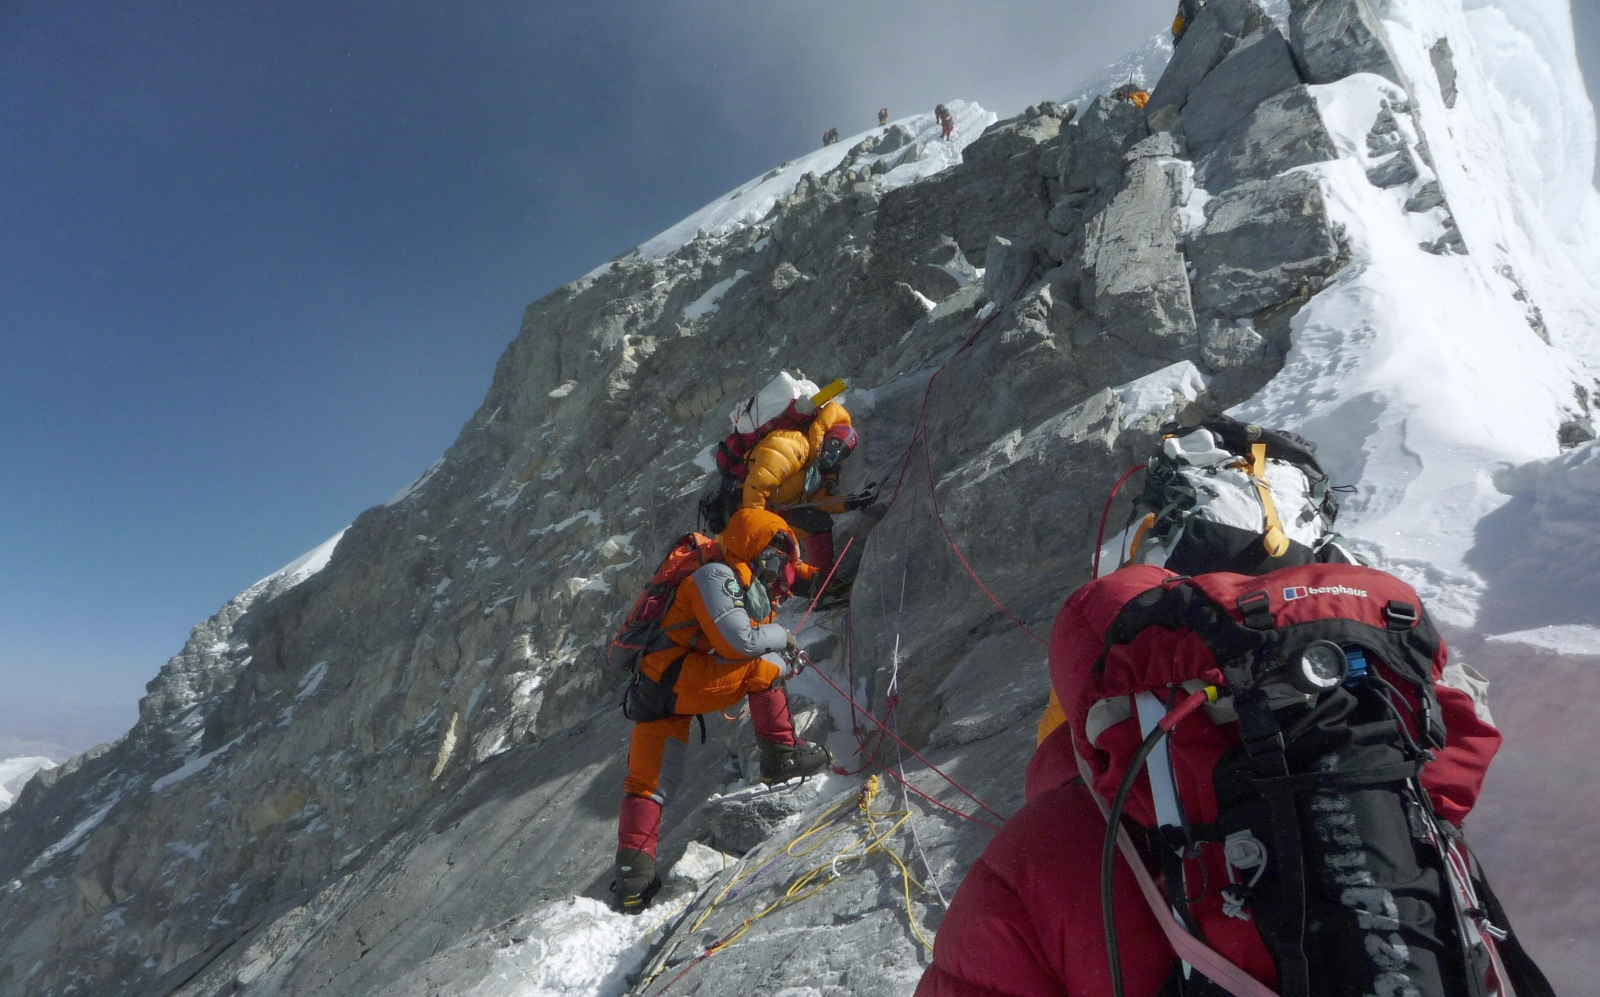 Rescuers retrieve bodies of 3 Indian climbers from Everest